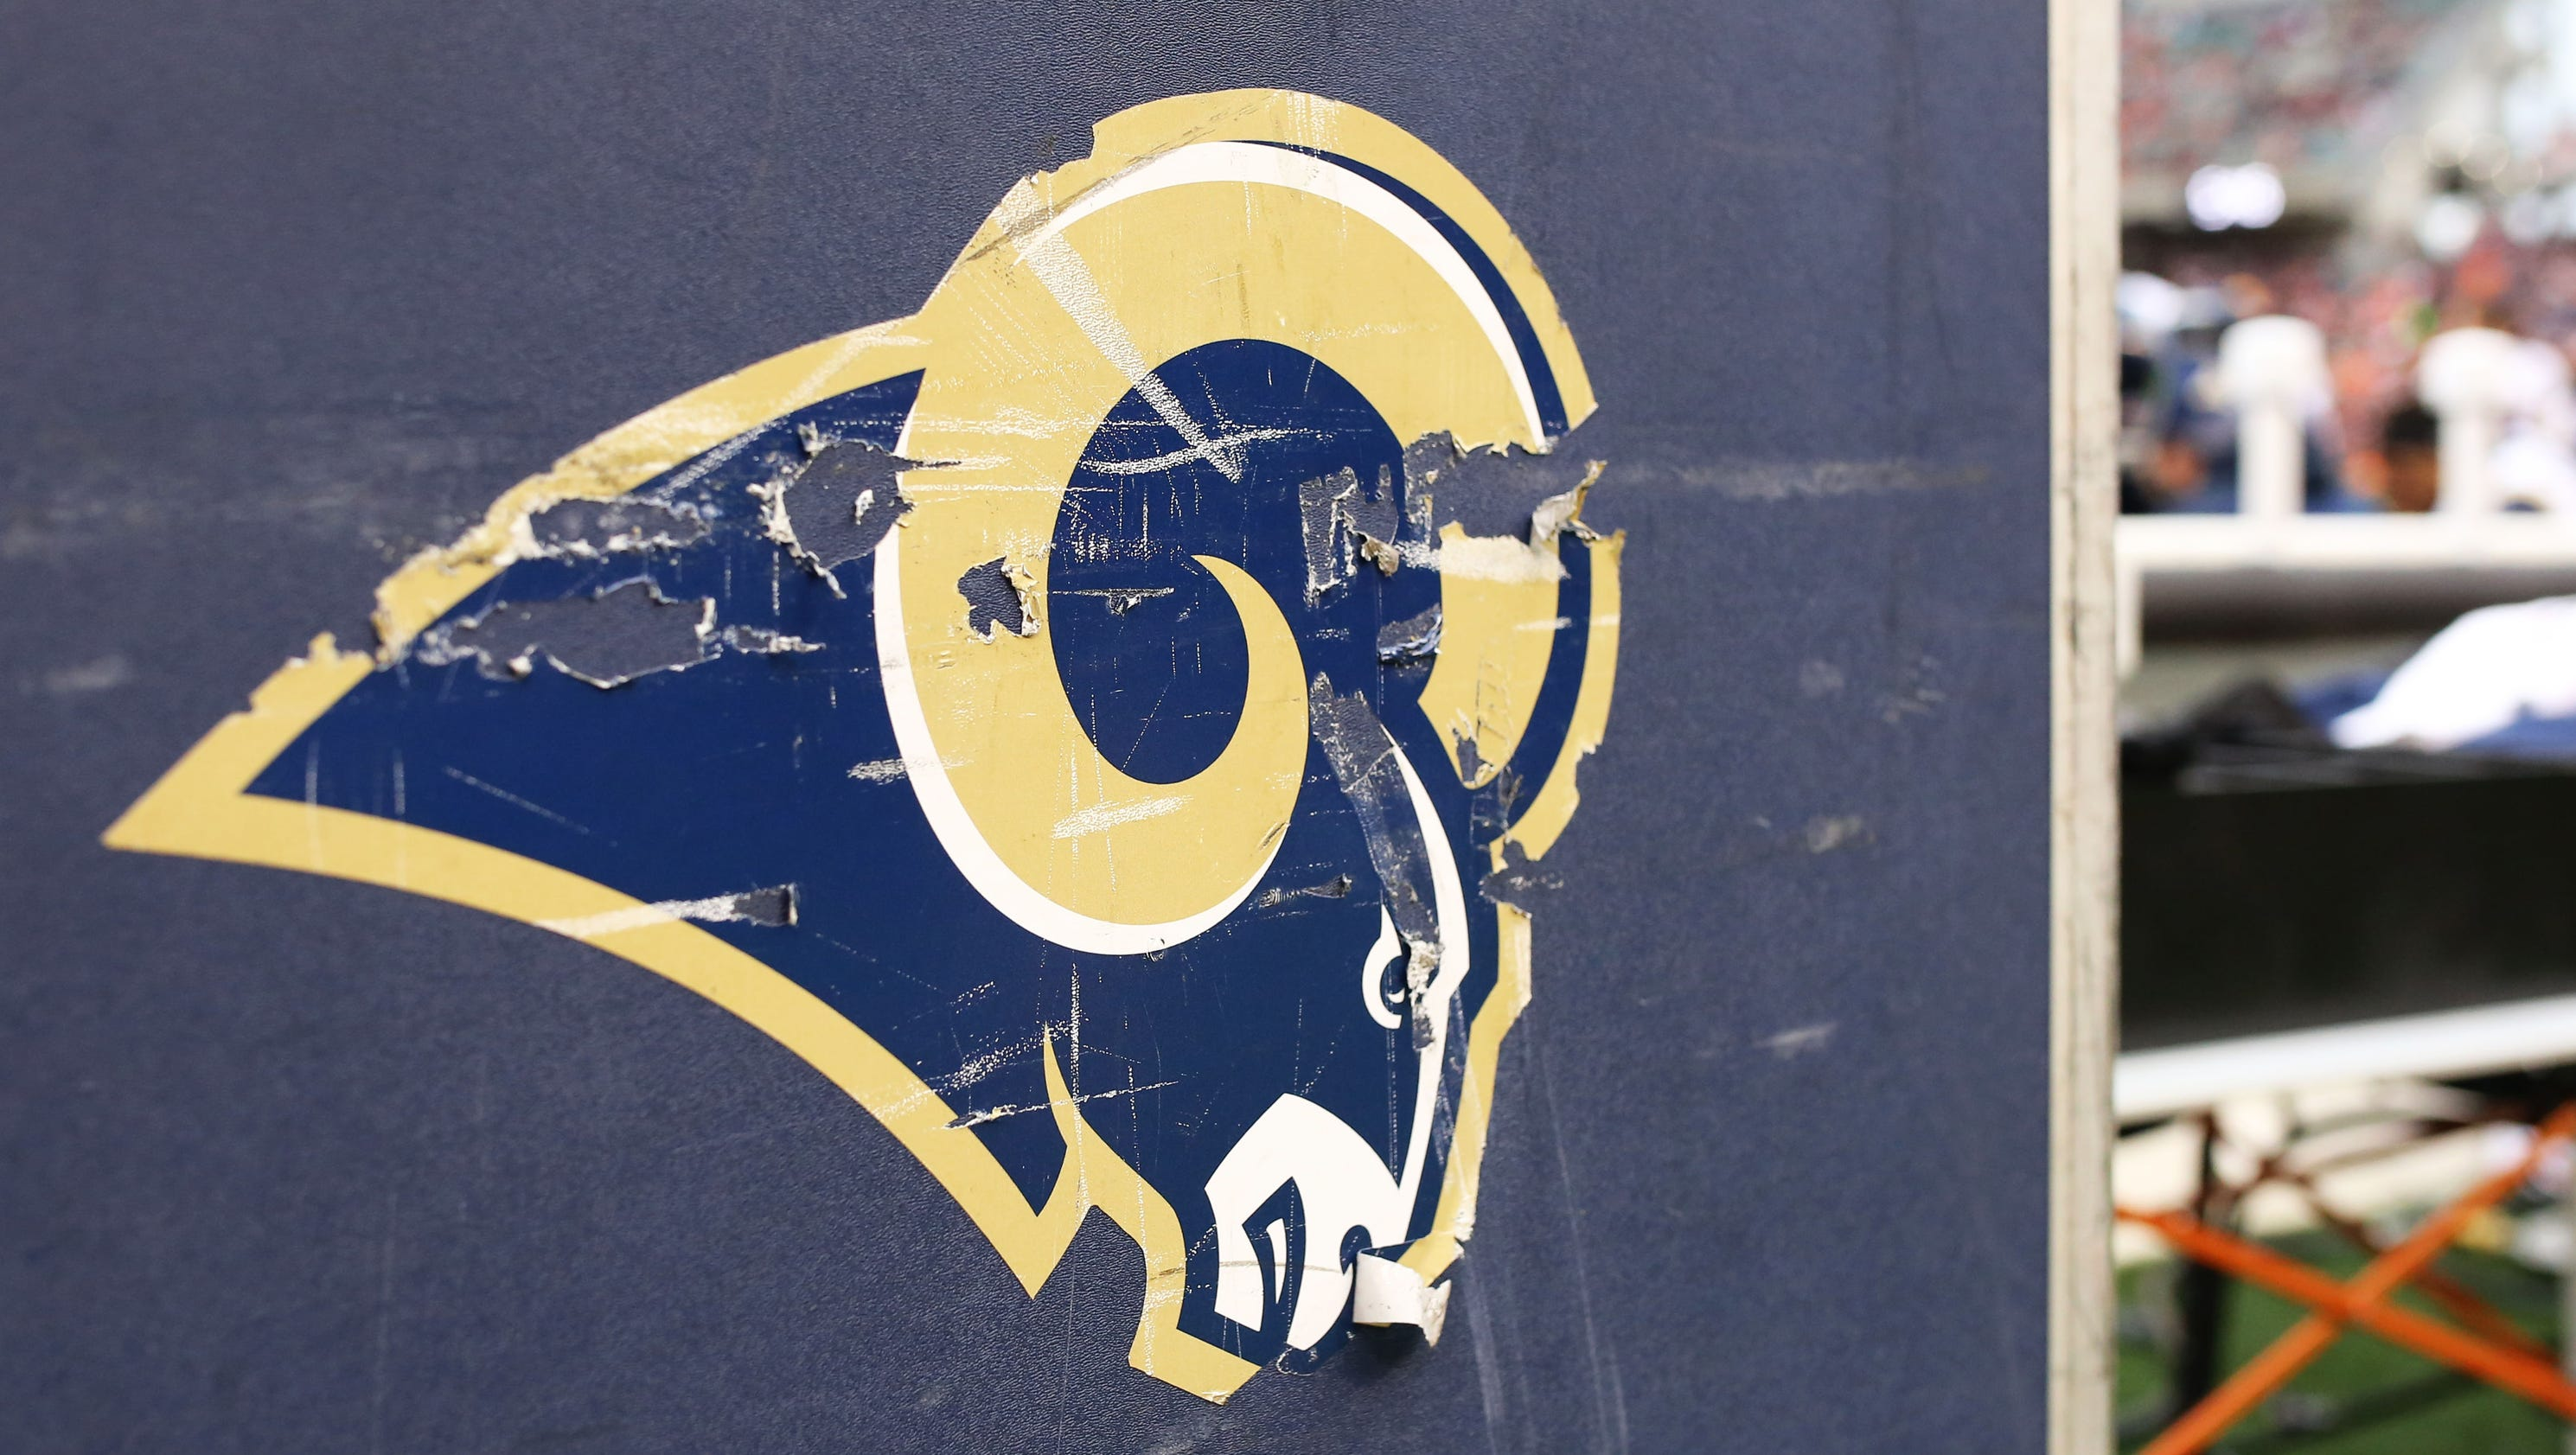 St Louis mayor Francis Slay rips NFL after Rams departure